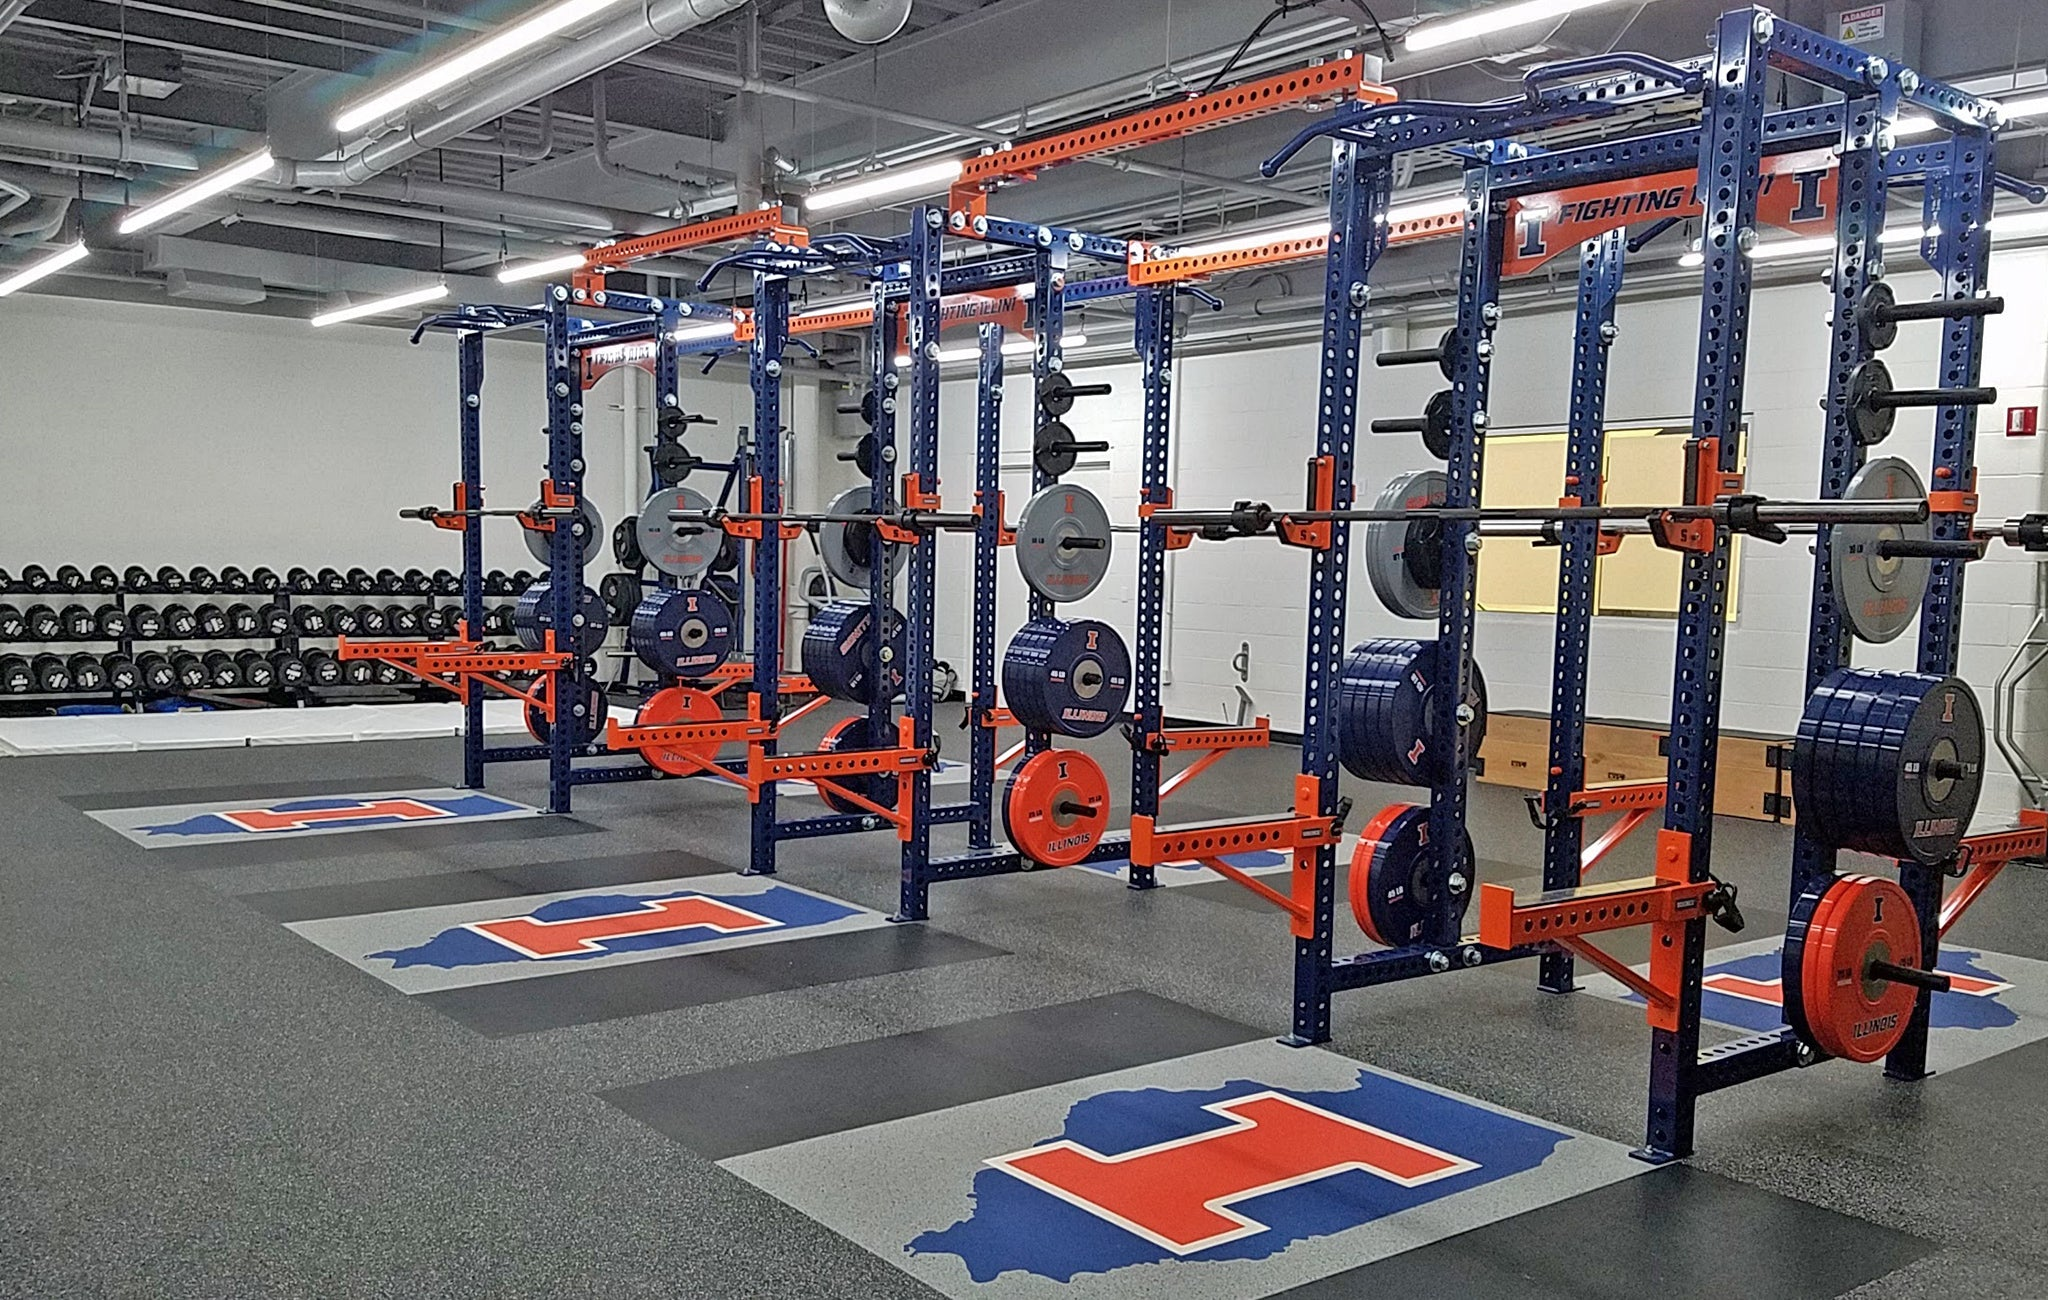 University of Illinois Basketball Weight Room